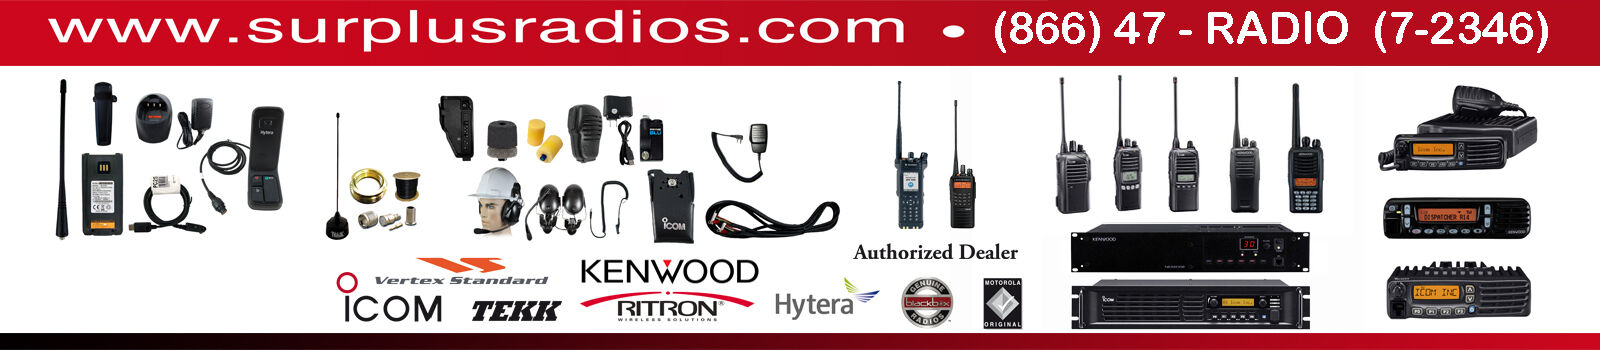 Surplus Two Way Radios